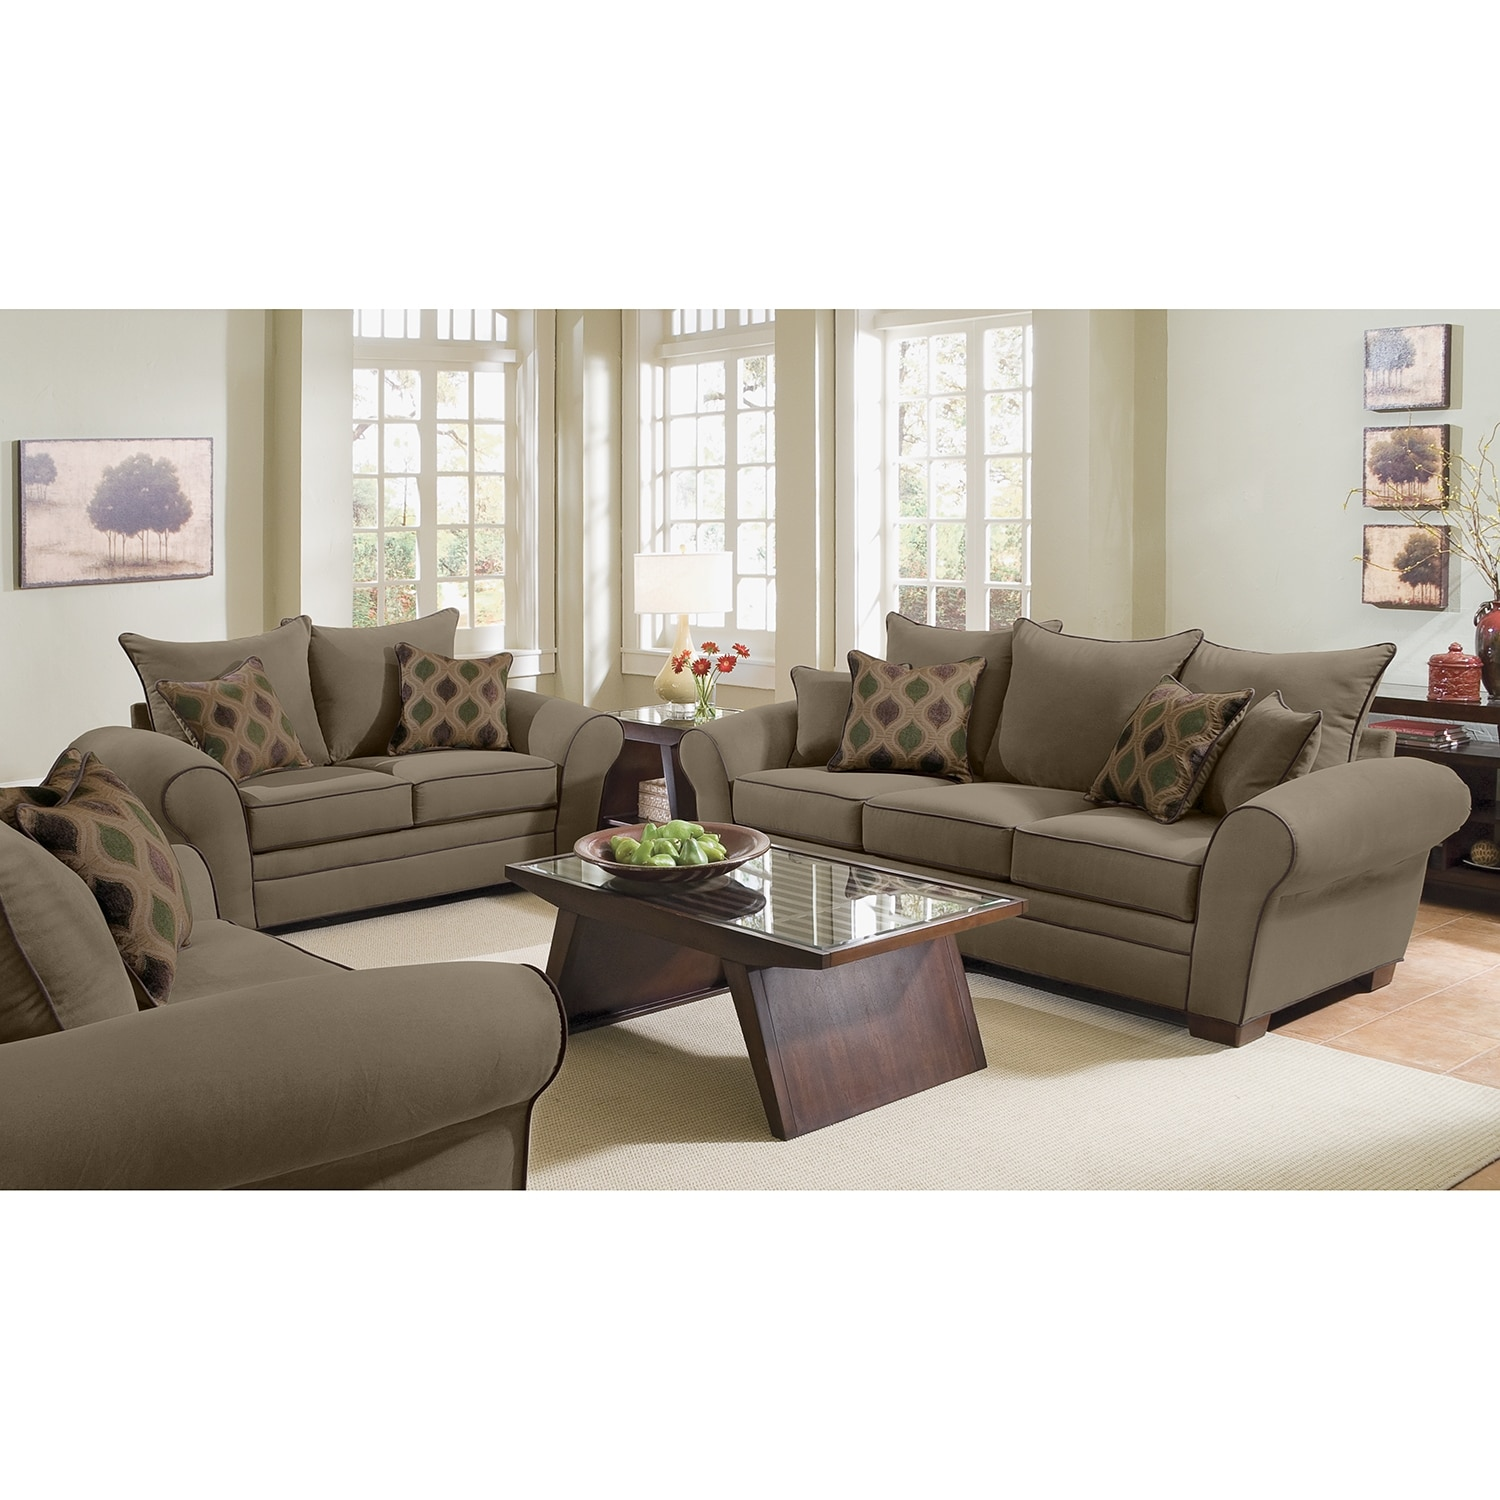 Rendezvous Sofa And Loveseat Set Olive Value City